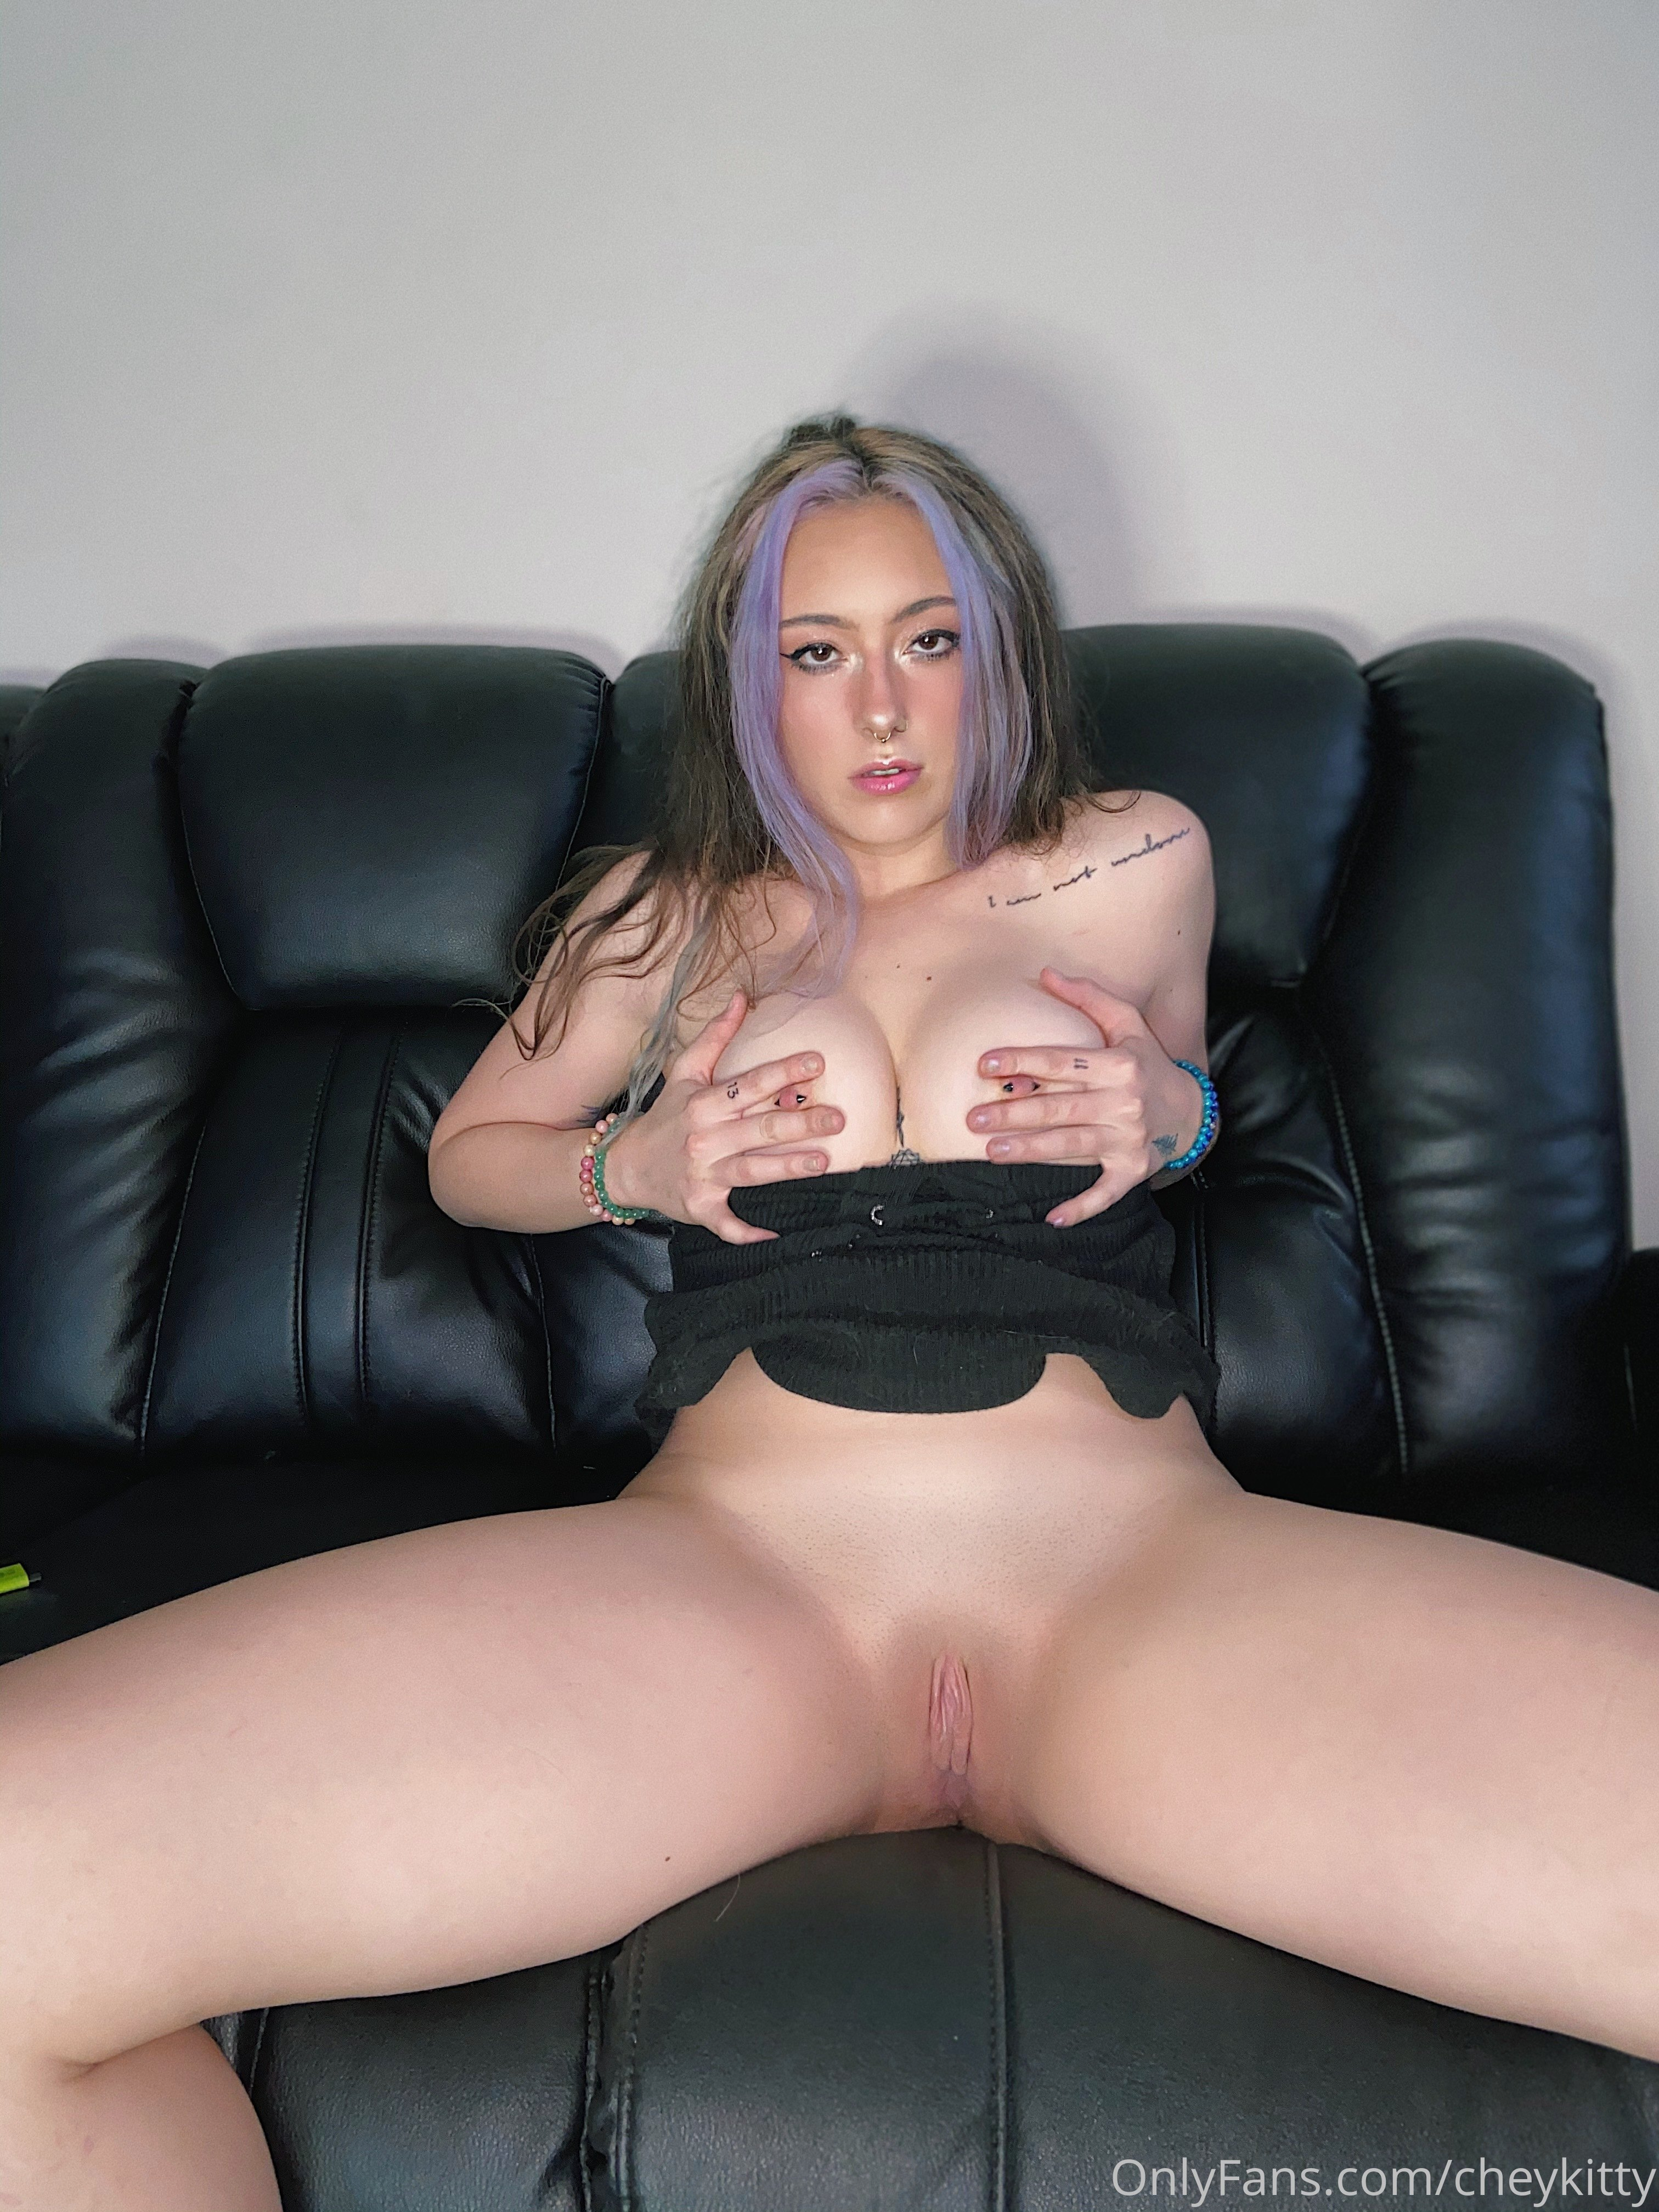 Cheykitty Onlyfans Leaked 0115